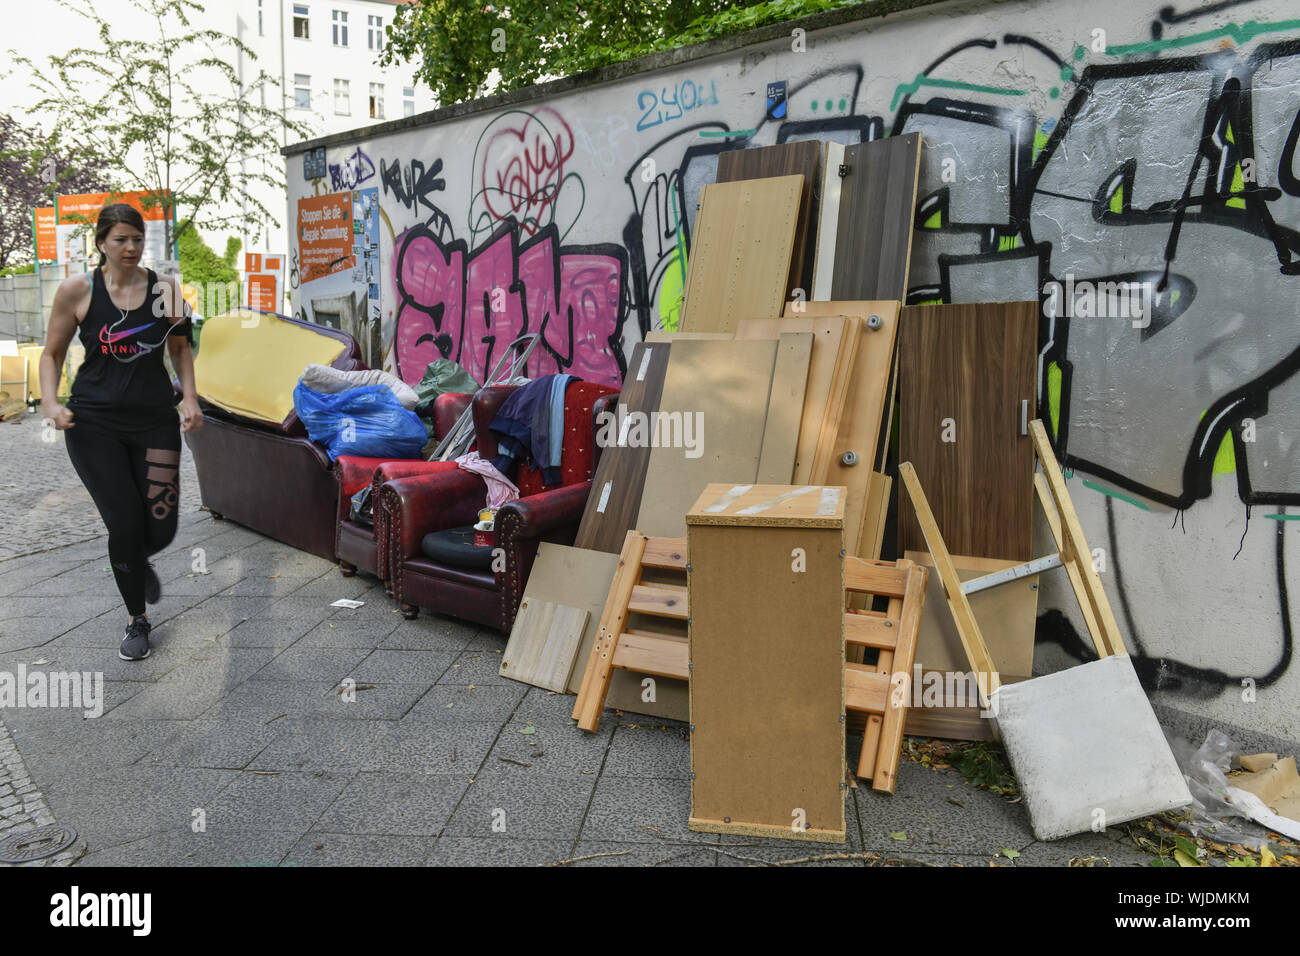 Rubbish, waste disposal, Behmstrasse, Behmstrasse, Berlin, Germany, mud, dirtily, piece of furniture, piece of furniture, garbage, waste disposal, gar Stock Photo